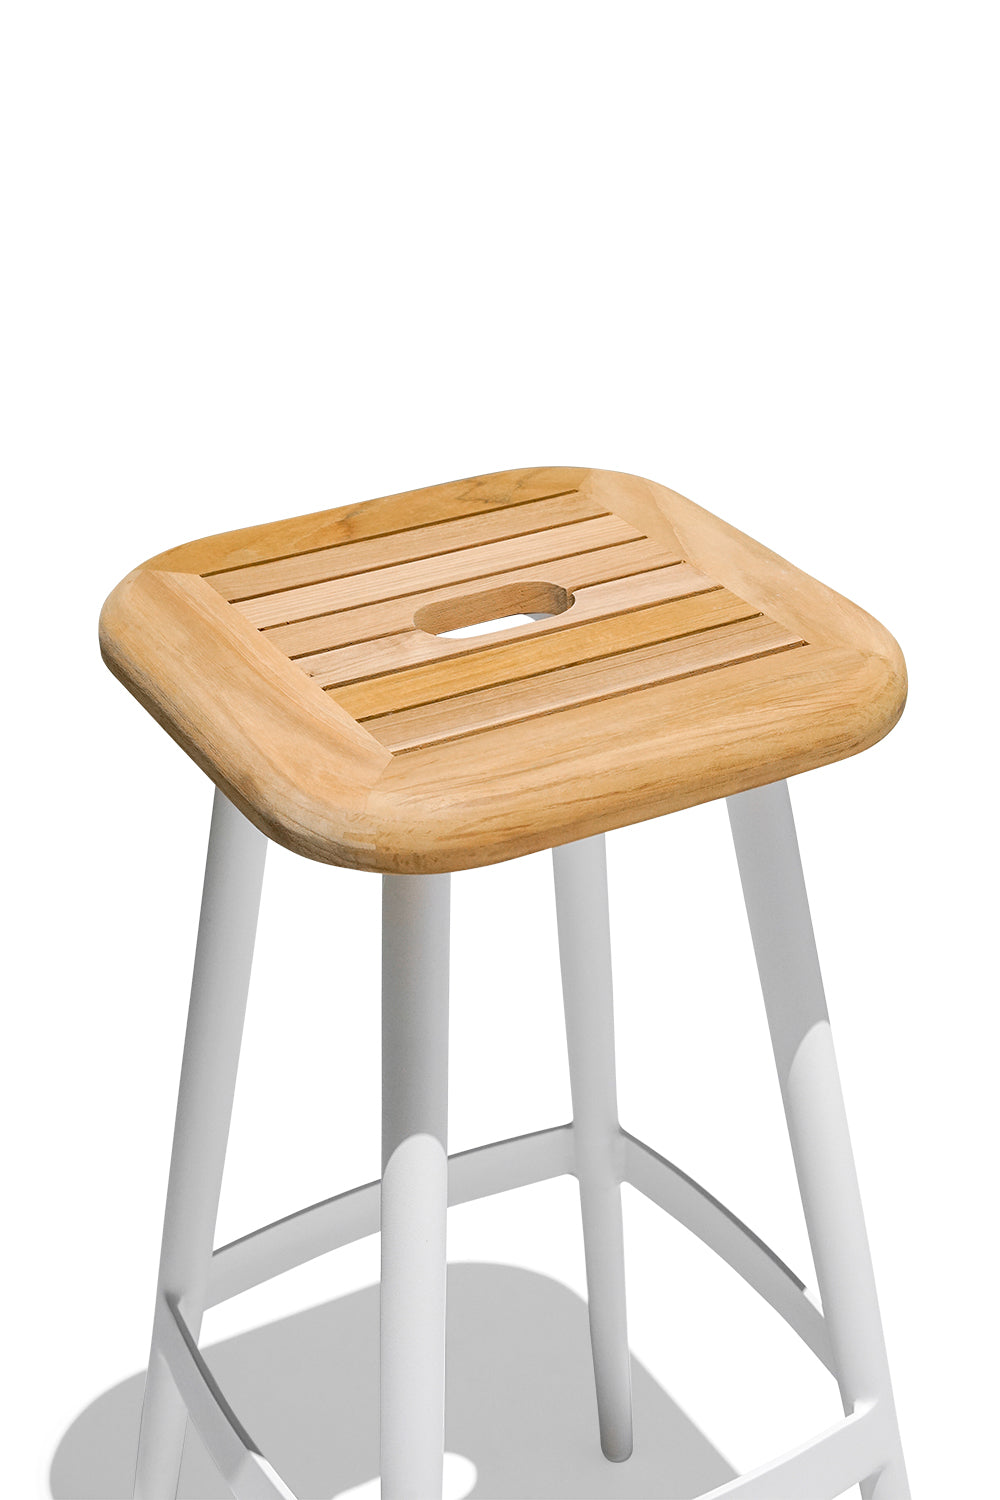 AVOCA teak bar stool